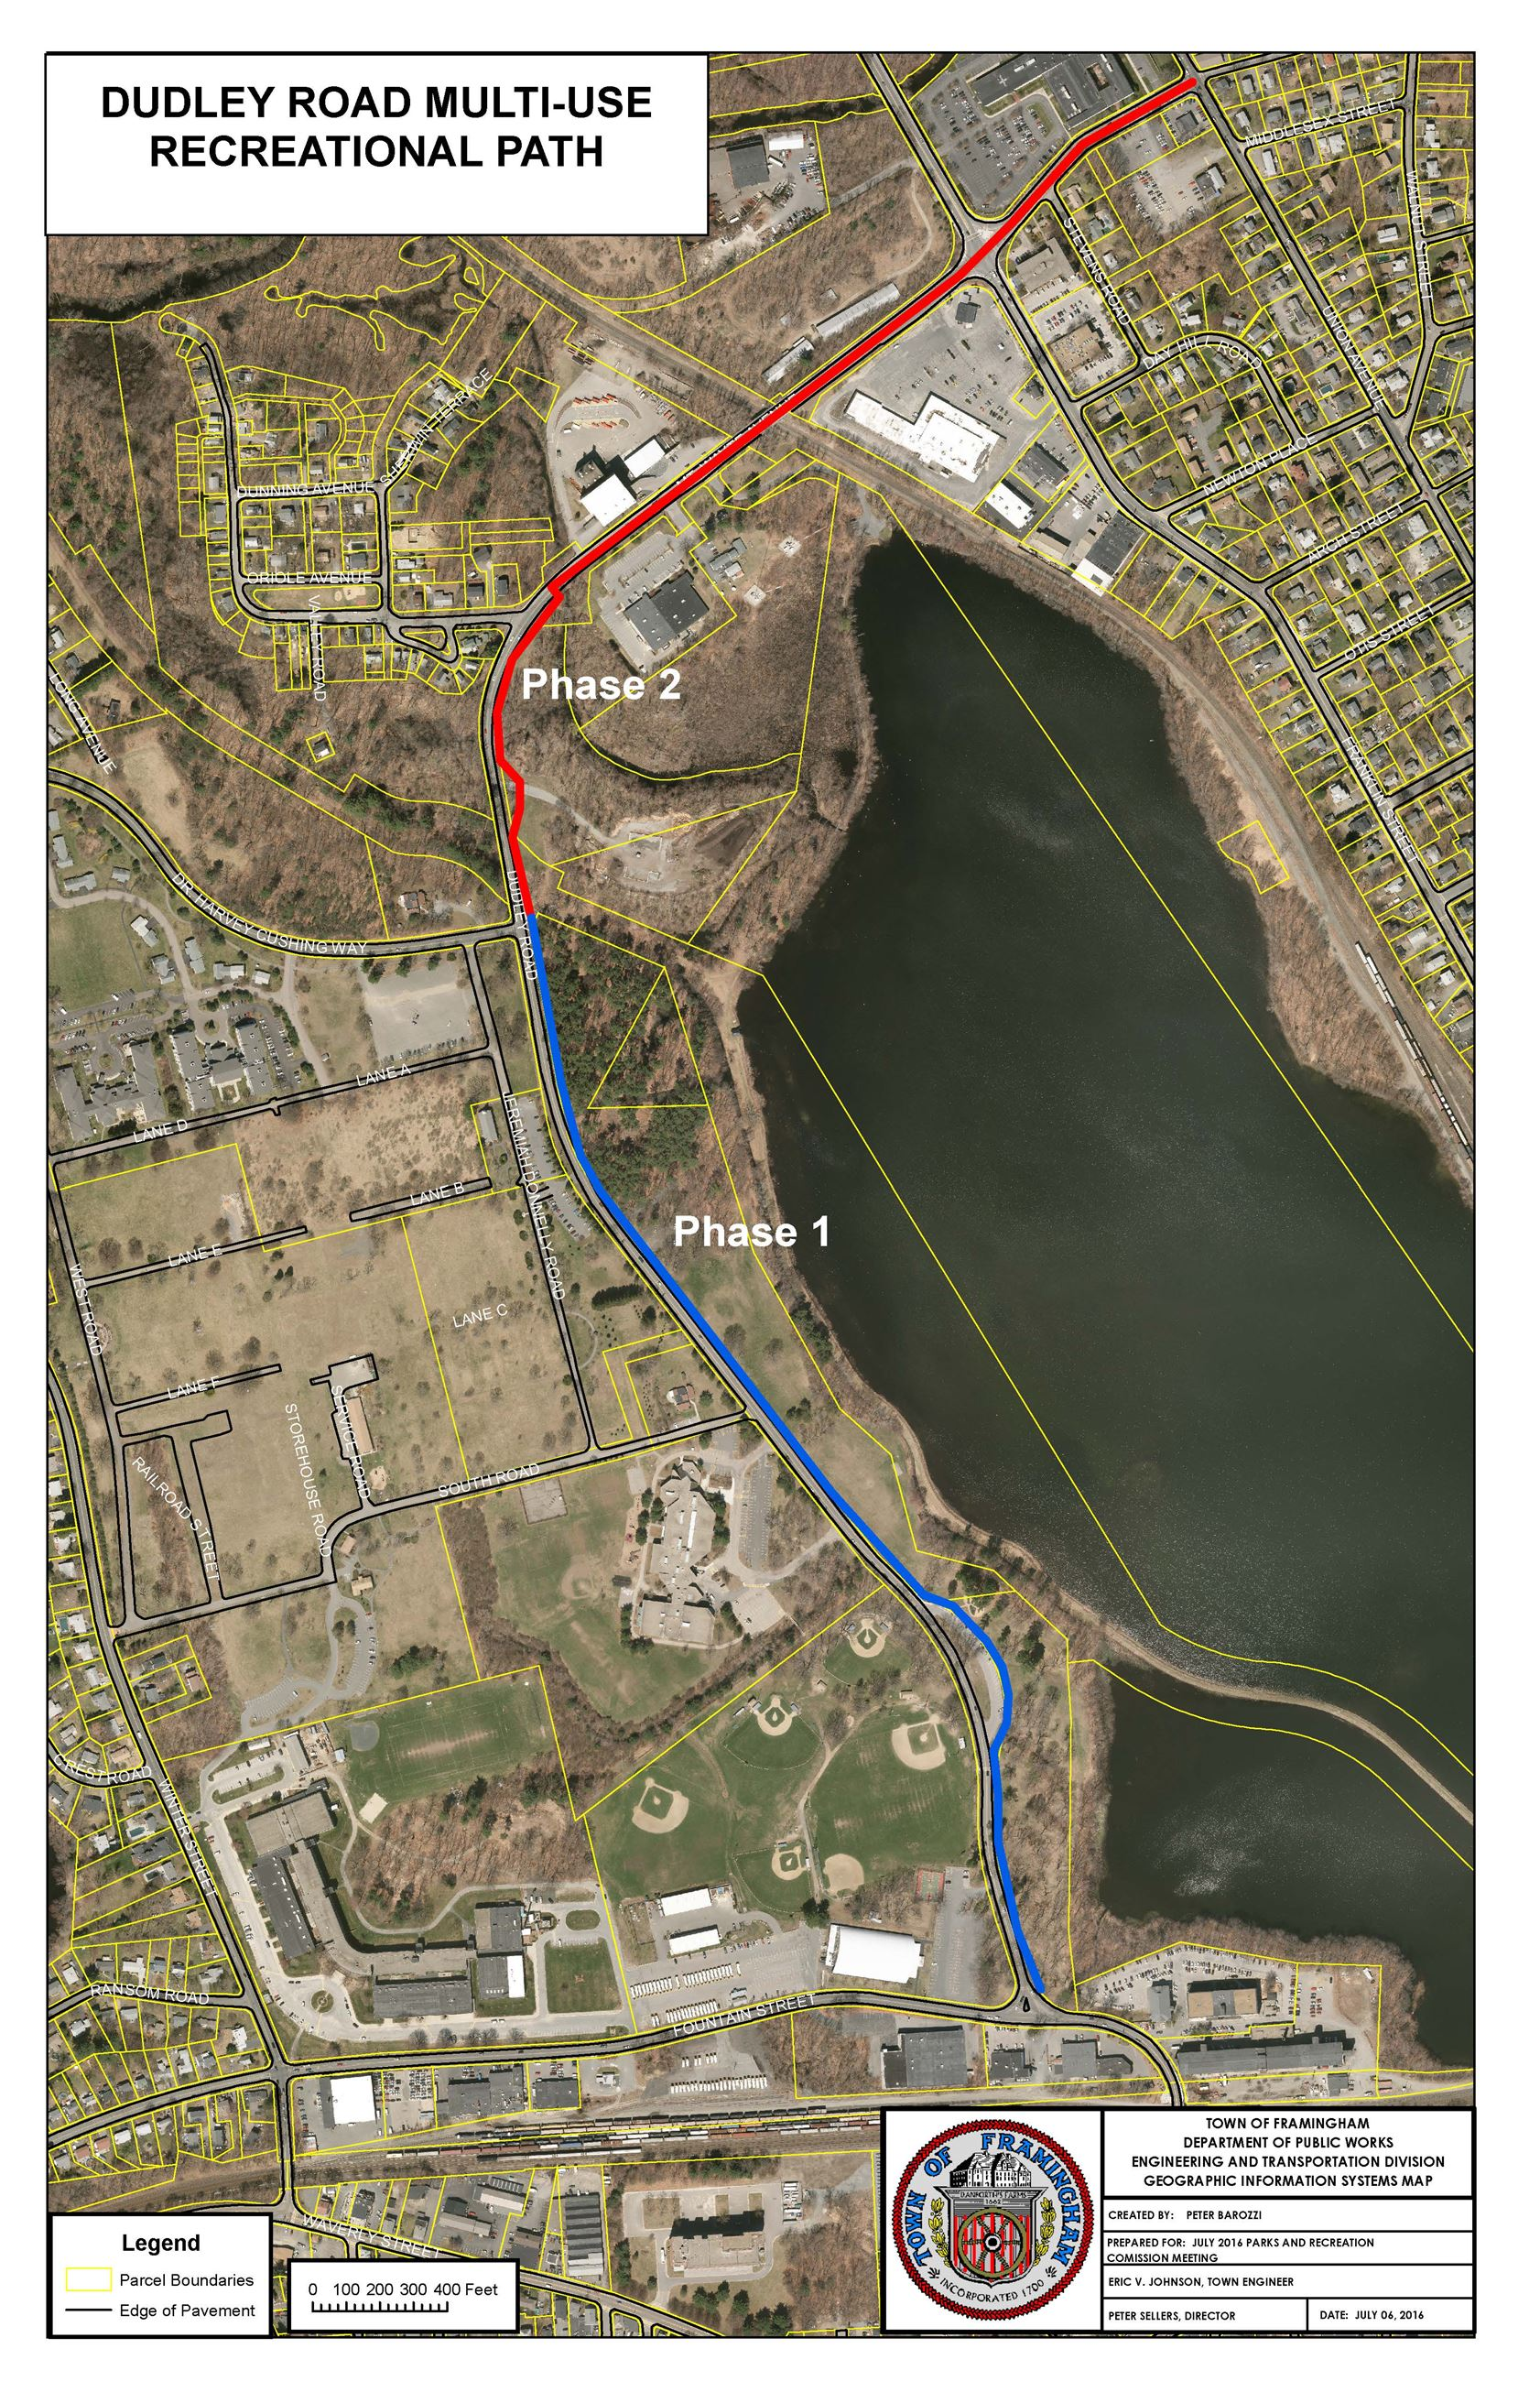 Dudley Road Multi-Use Path Map - Approximate Phasing